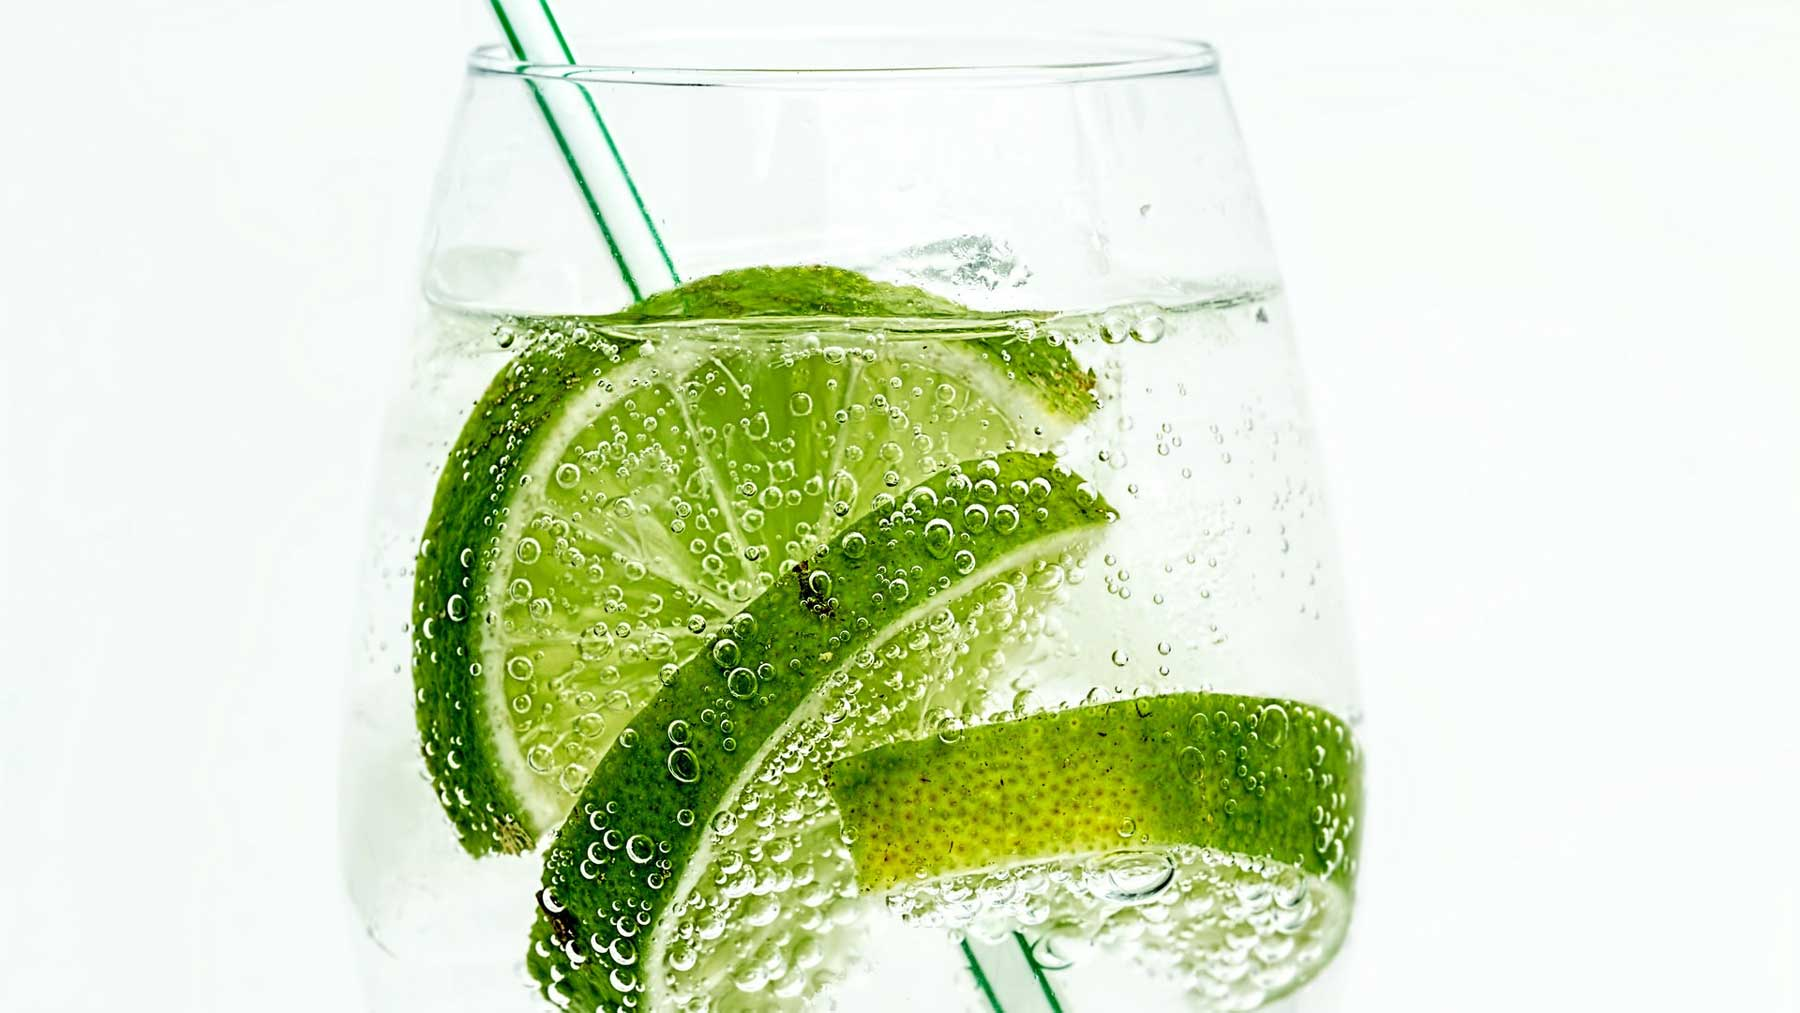 clear glass with soda water and lime slices with straw